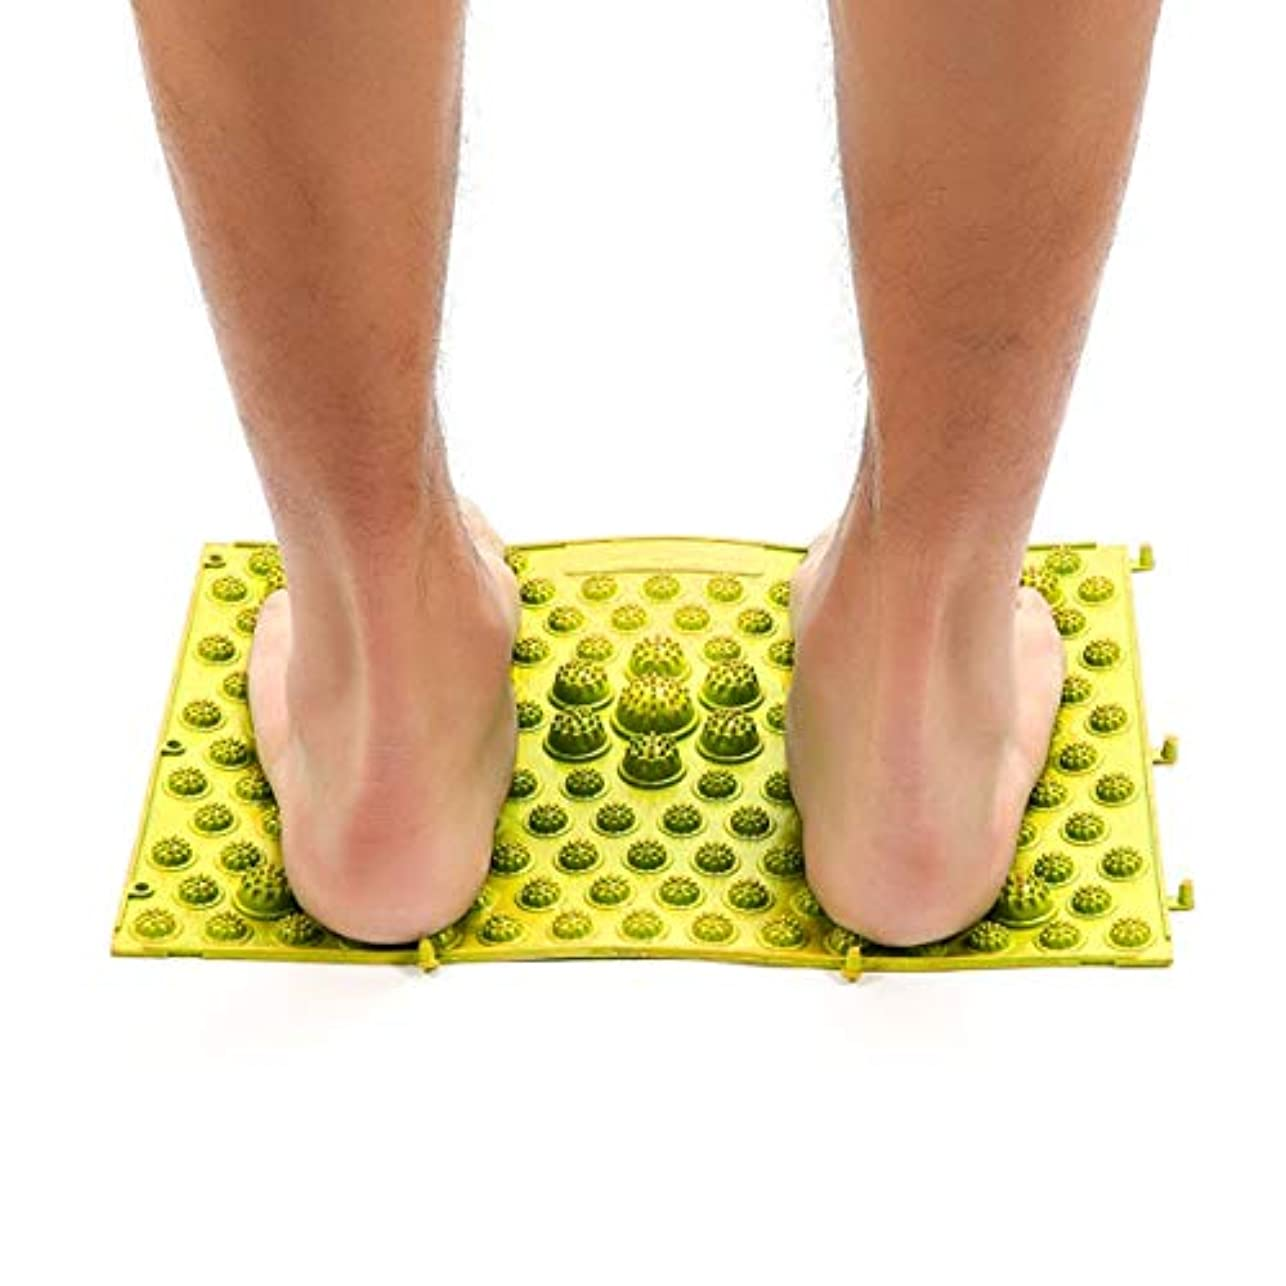 みがきますログ学者Acupressure Foot Mats Running Man Game Same Type Foot Reflexology Walking Massage Mat for Pain Relief Stress Relief...